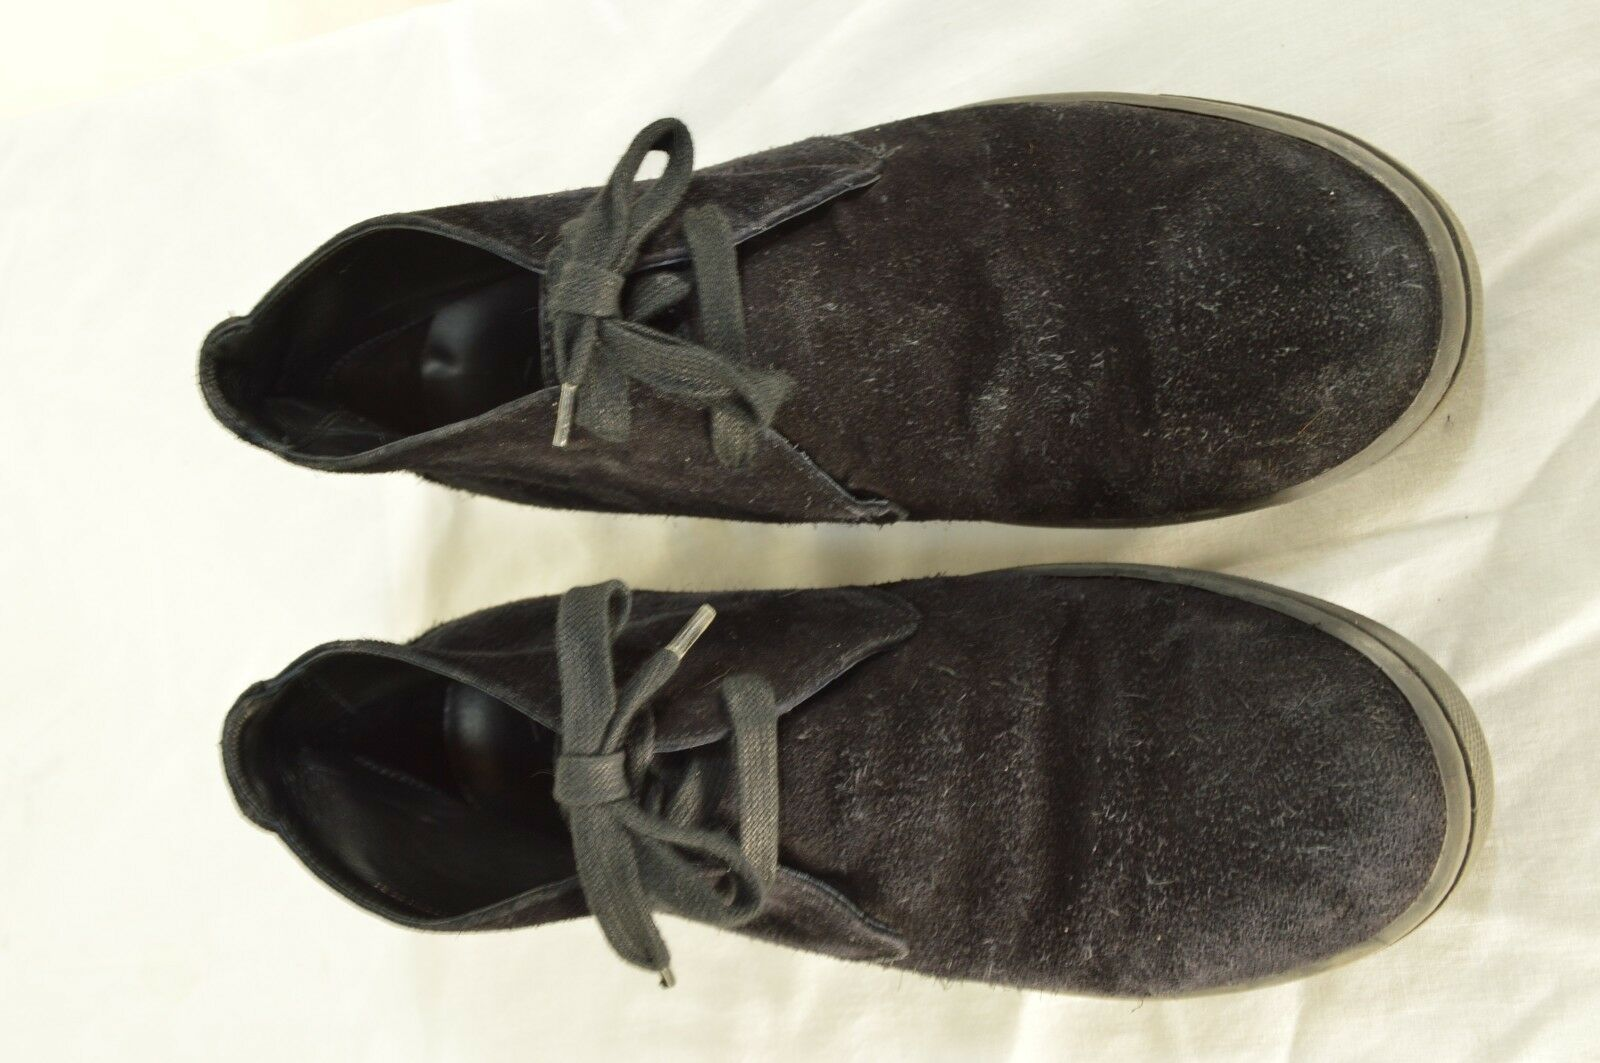 Vince shoes boots hi top US 8 EU 41 black suede leather upper leather lining